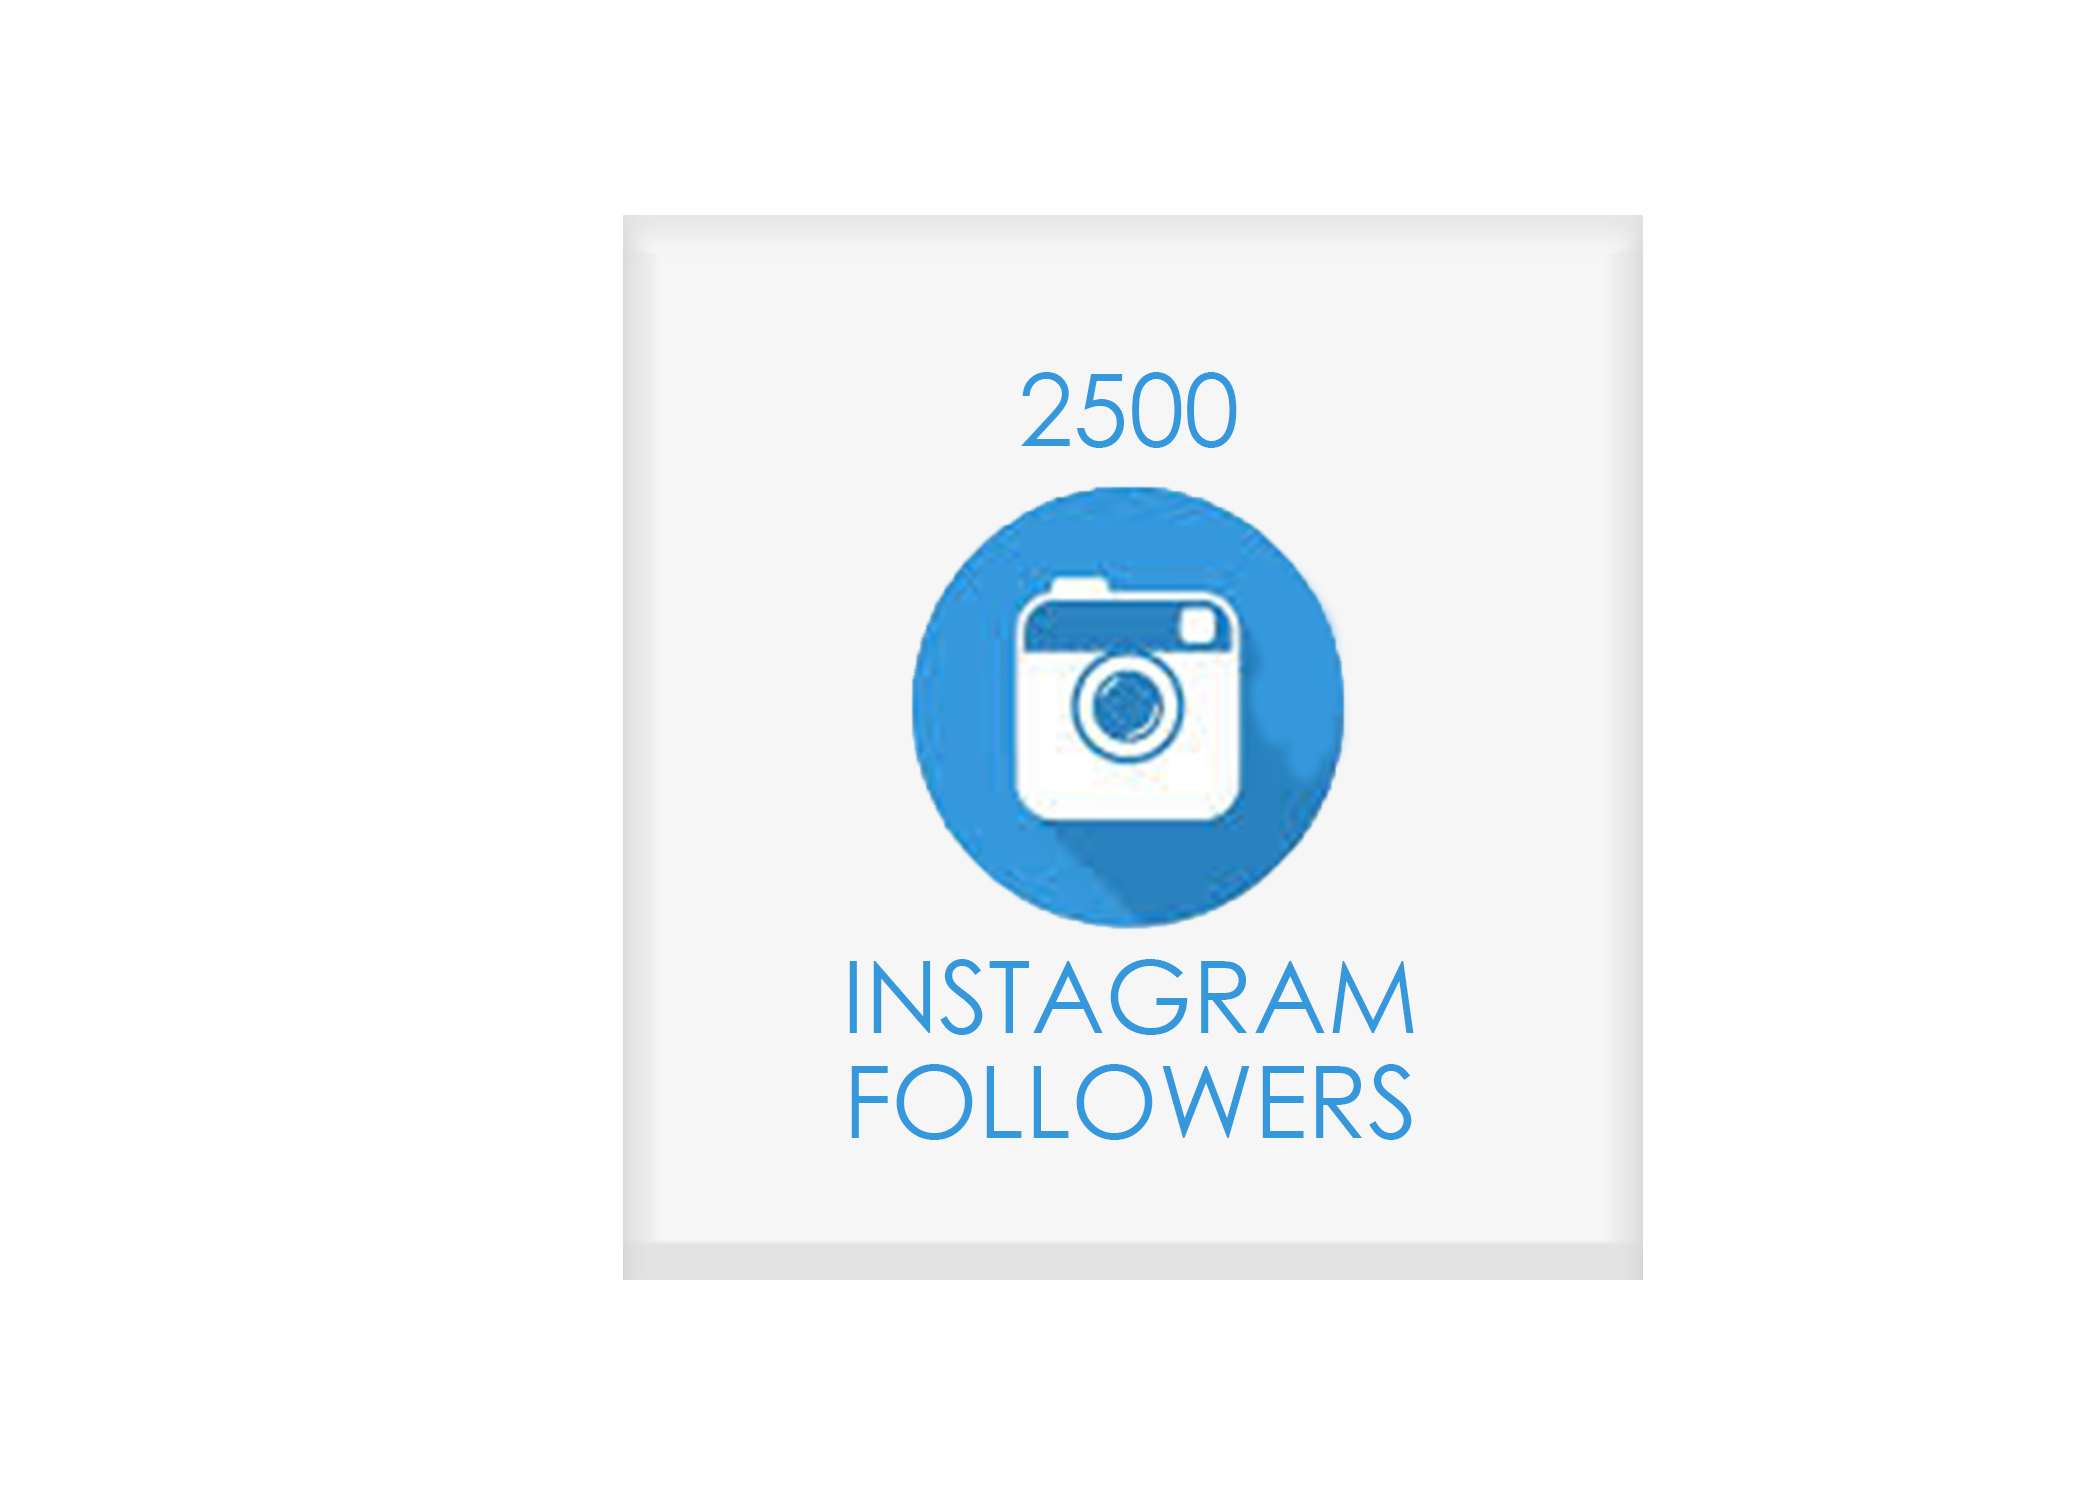 2500 instagram followers